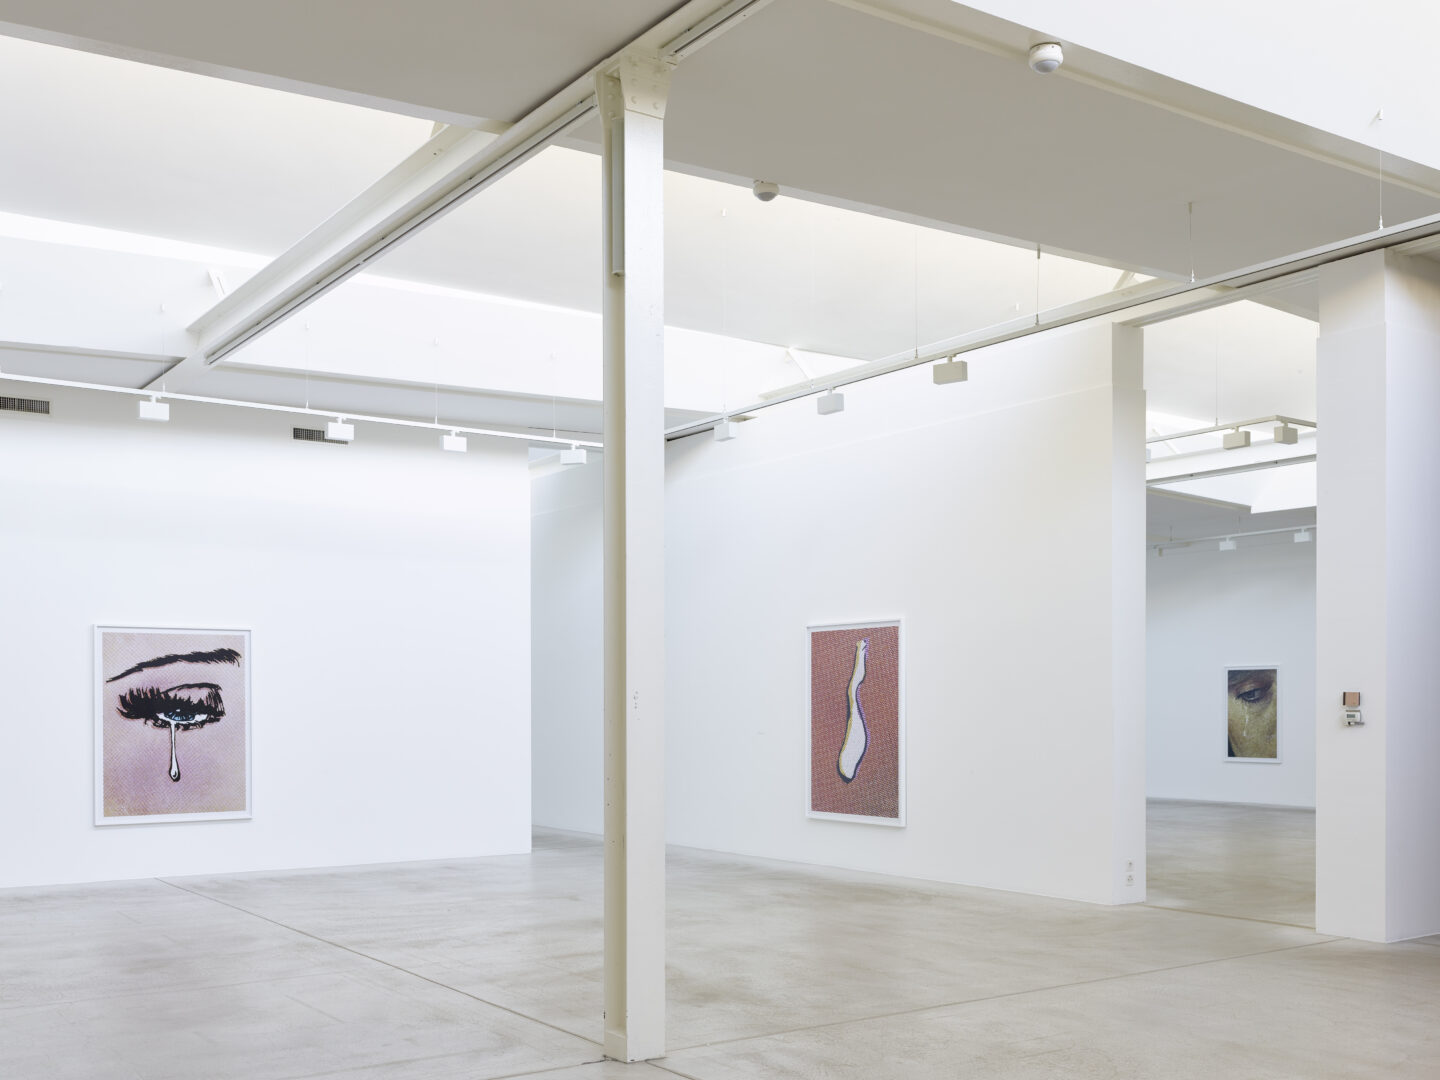 Exhibition View Anne Collier «Photographic» at Fotomuseum Winterthur, Winterthur, 2019 / Photo: © Benedikt Redmann; Fotomuseum Winterthur